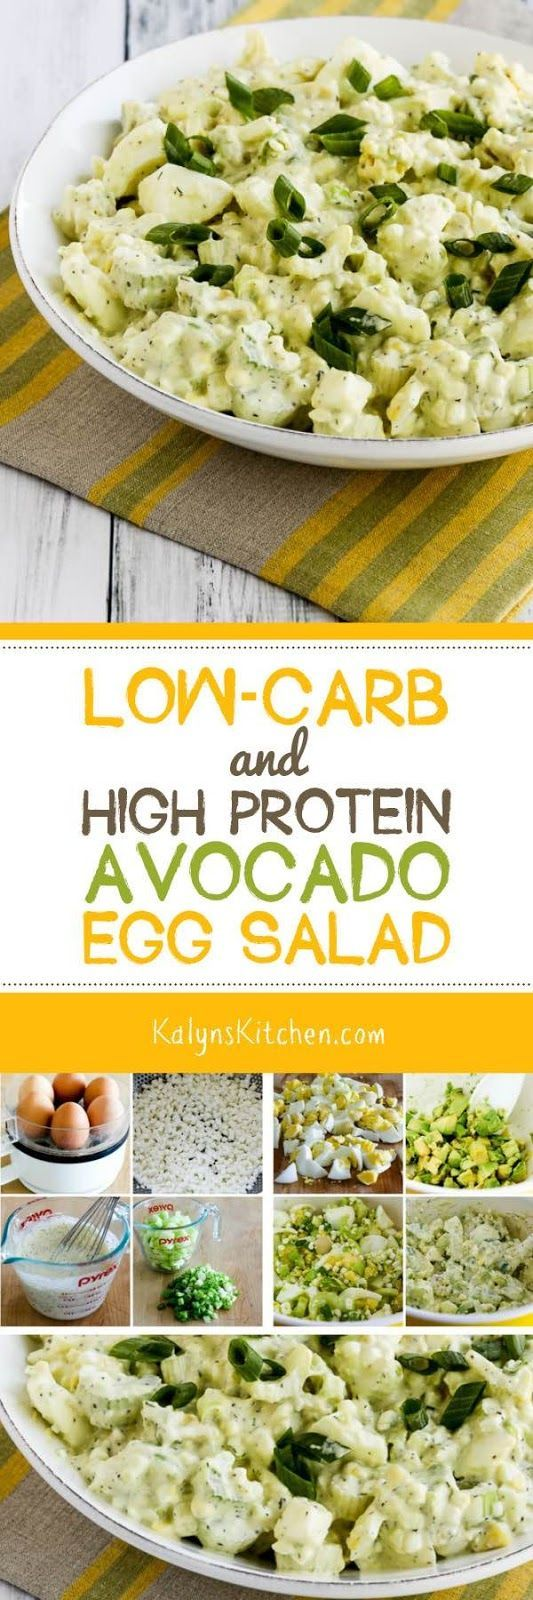 Low-Carb and High Protein Avocado Egg Salad with C…